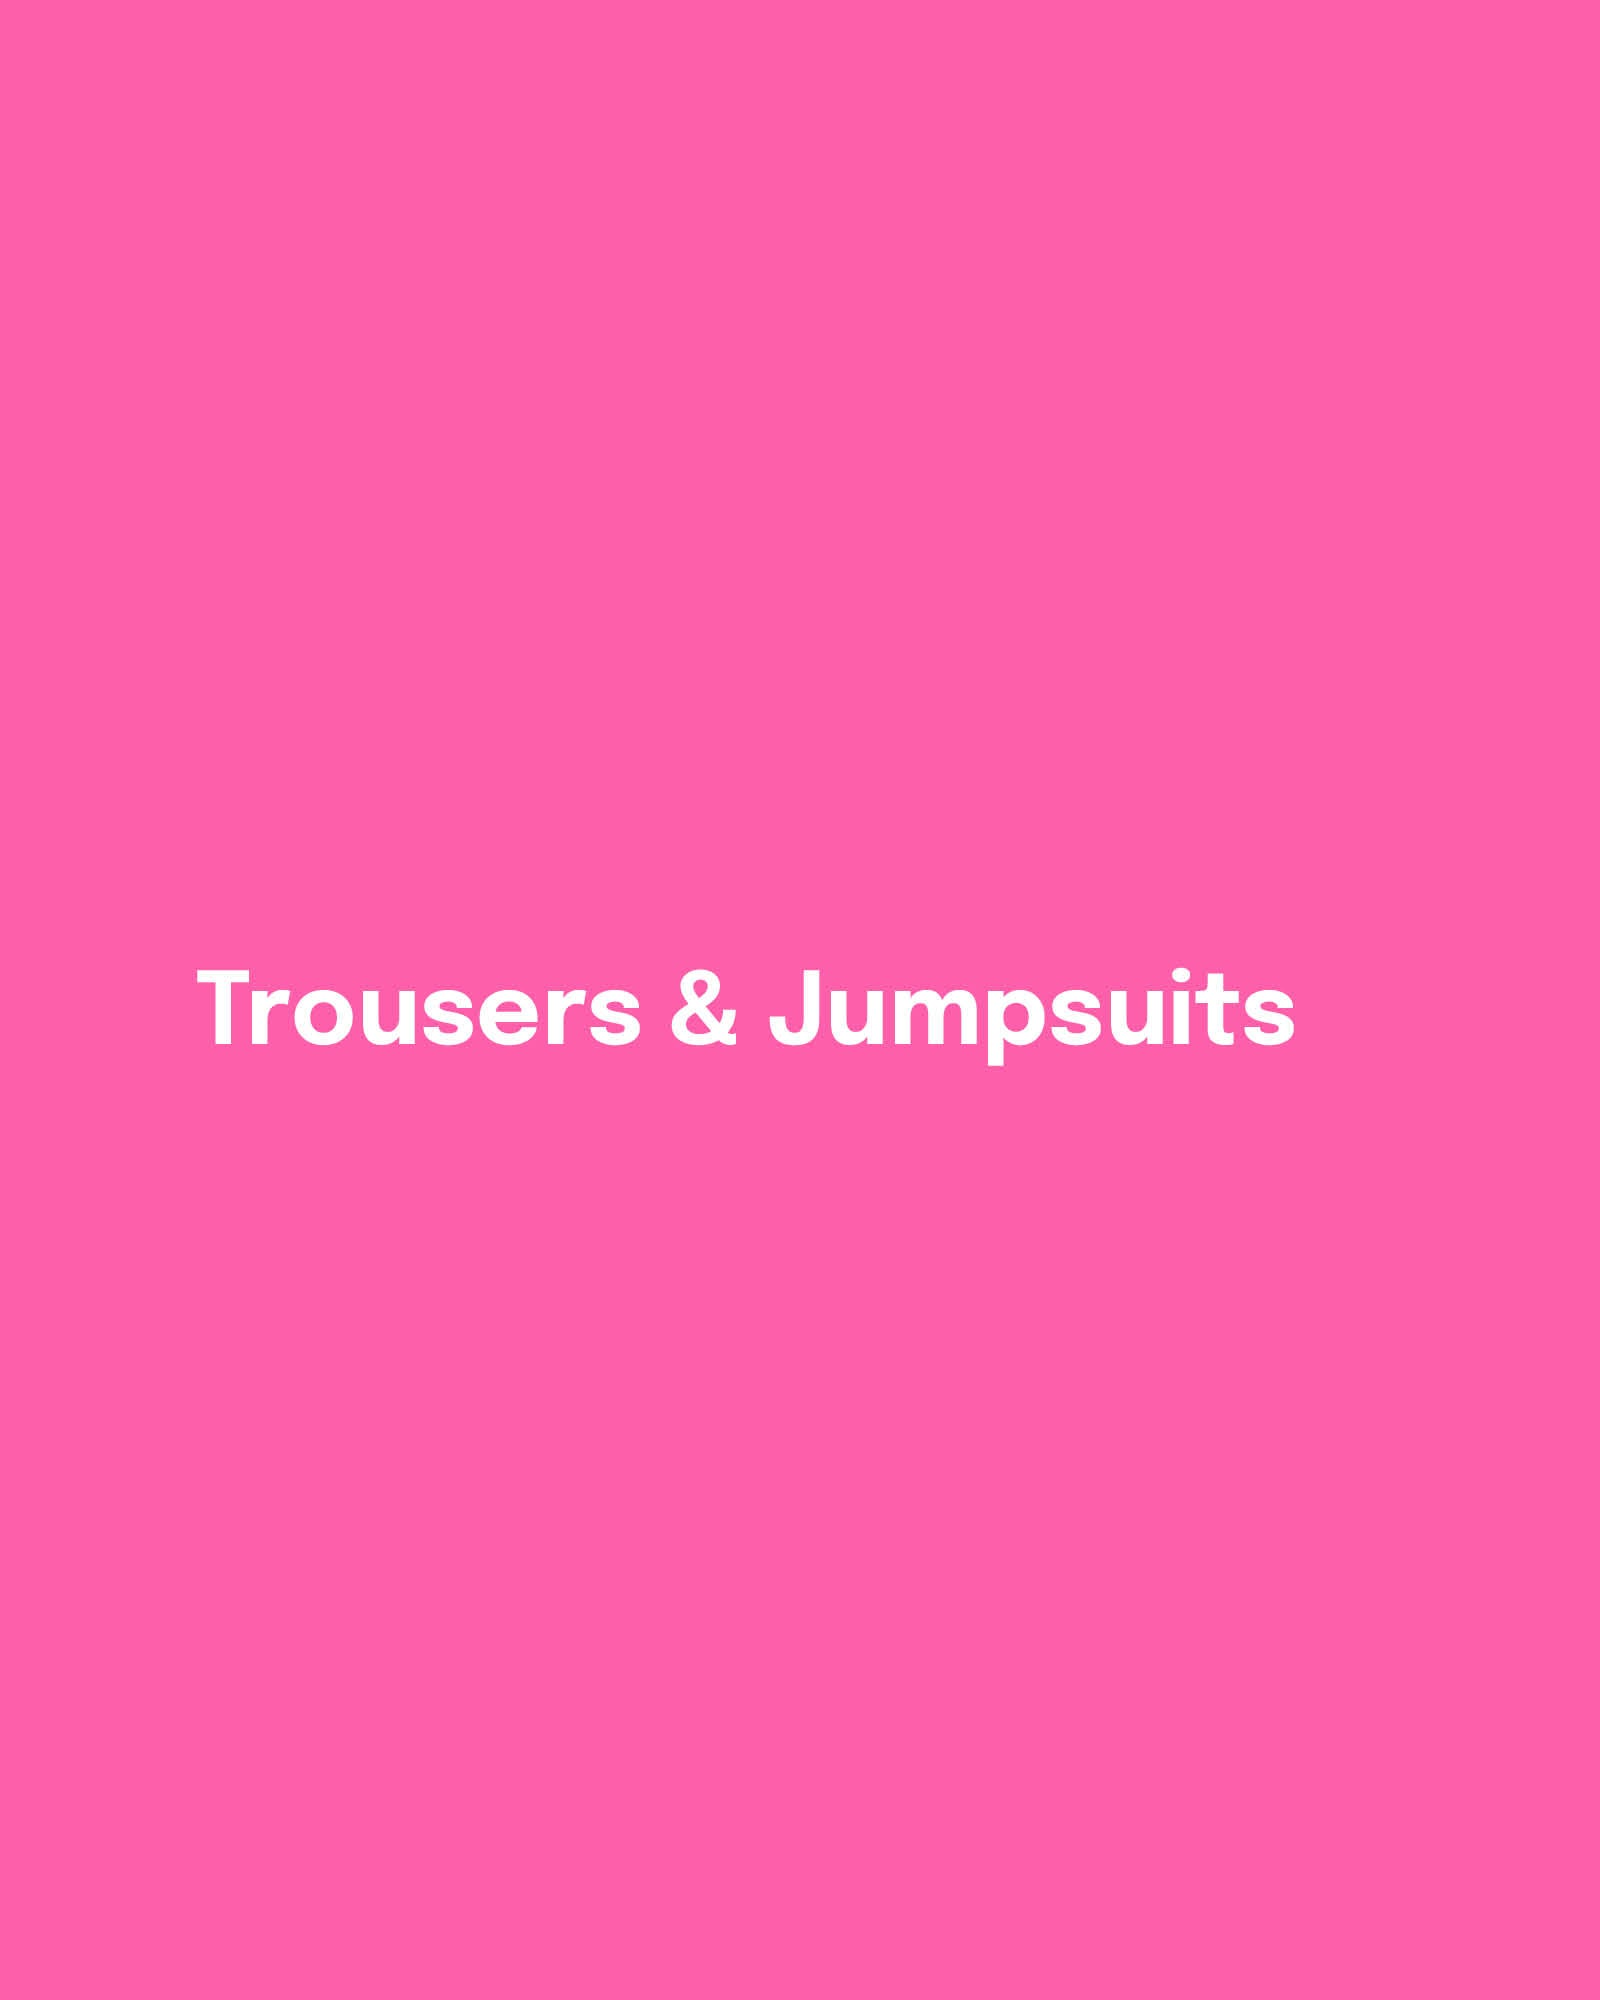 Trousers & Jumpsuits